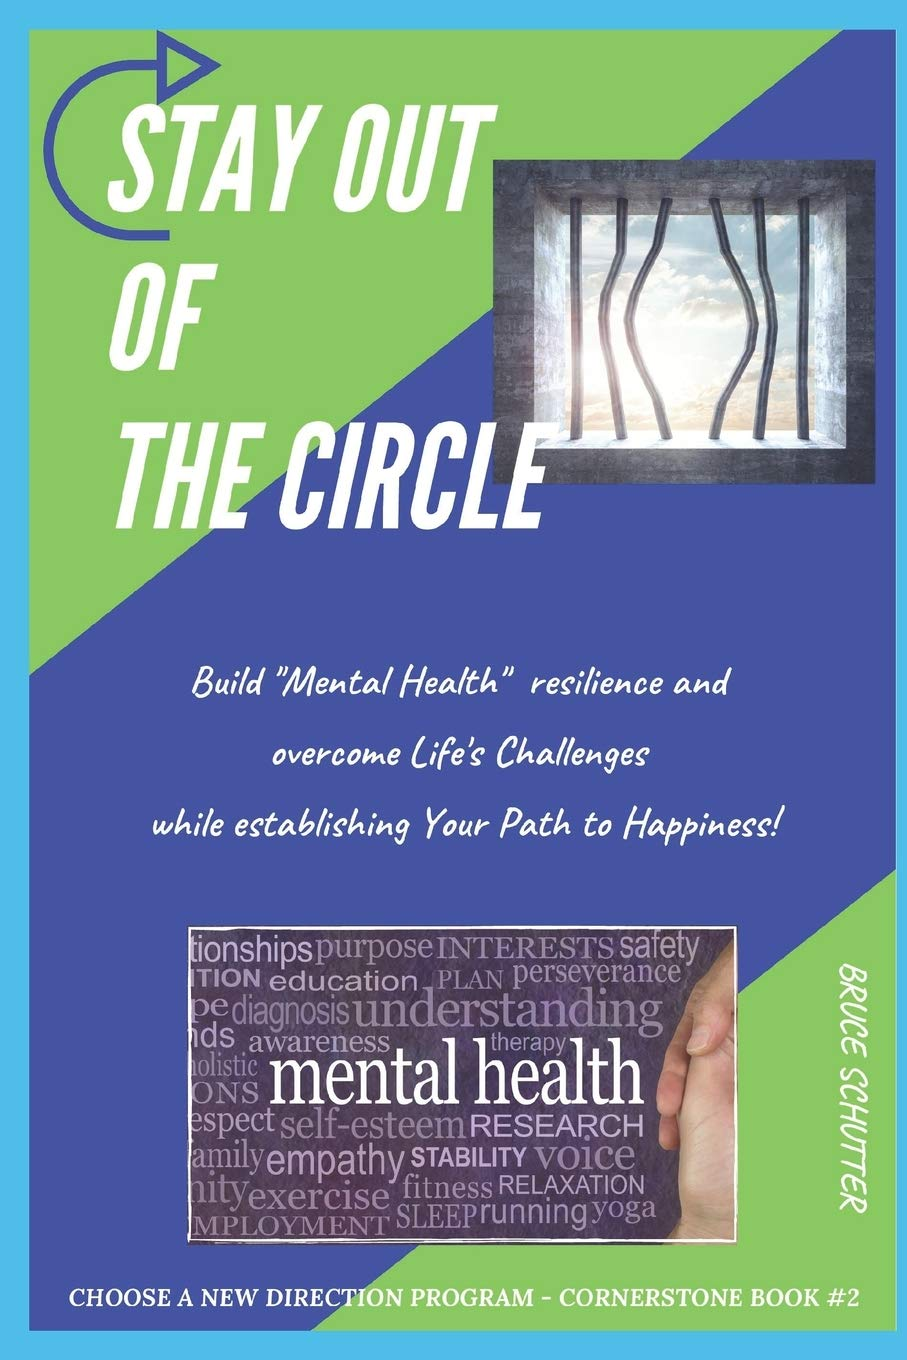 Stay Out of the Circle: Build Mental Health resilience and overcome Life's Challenges while establishing Your Path to Happiness